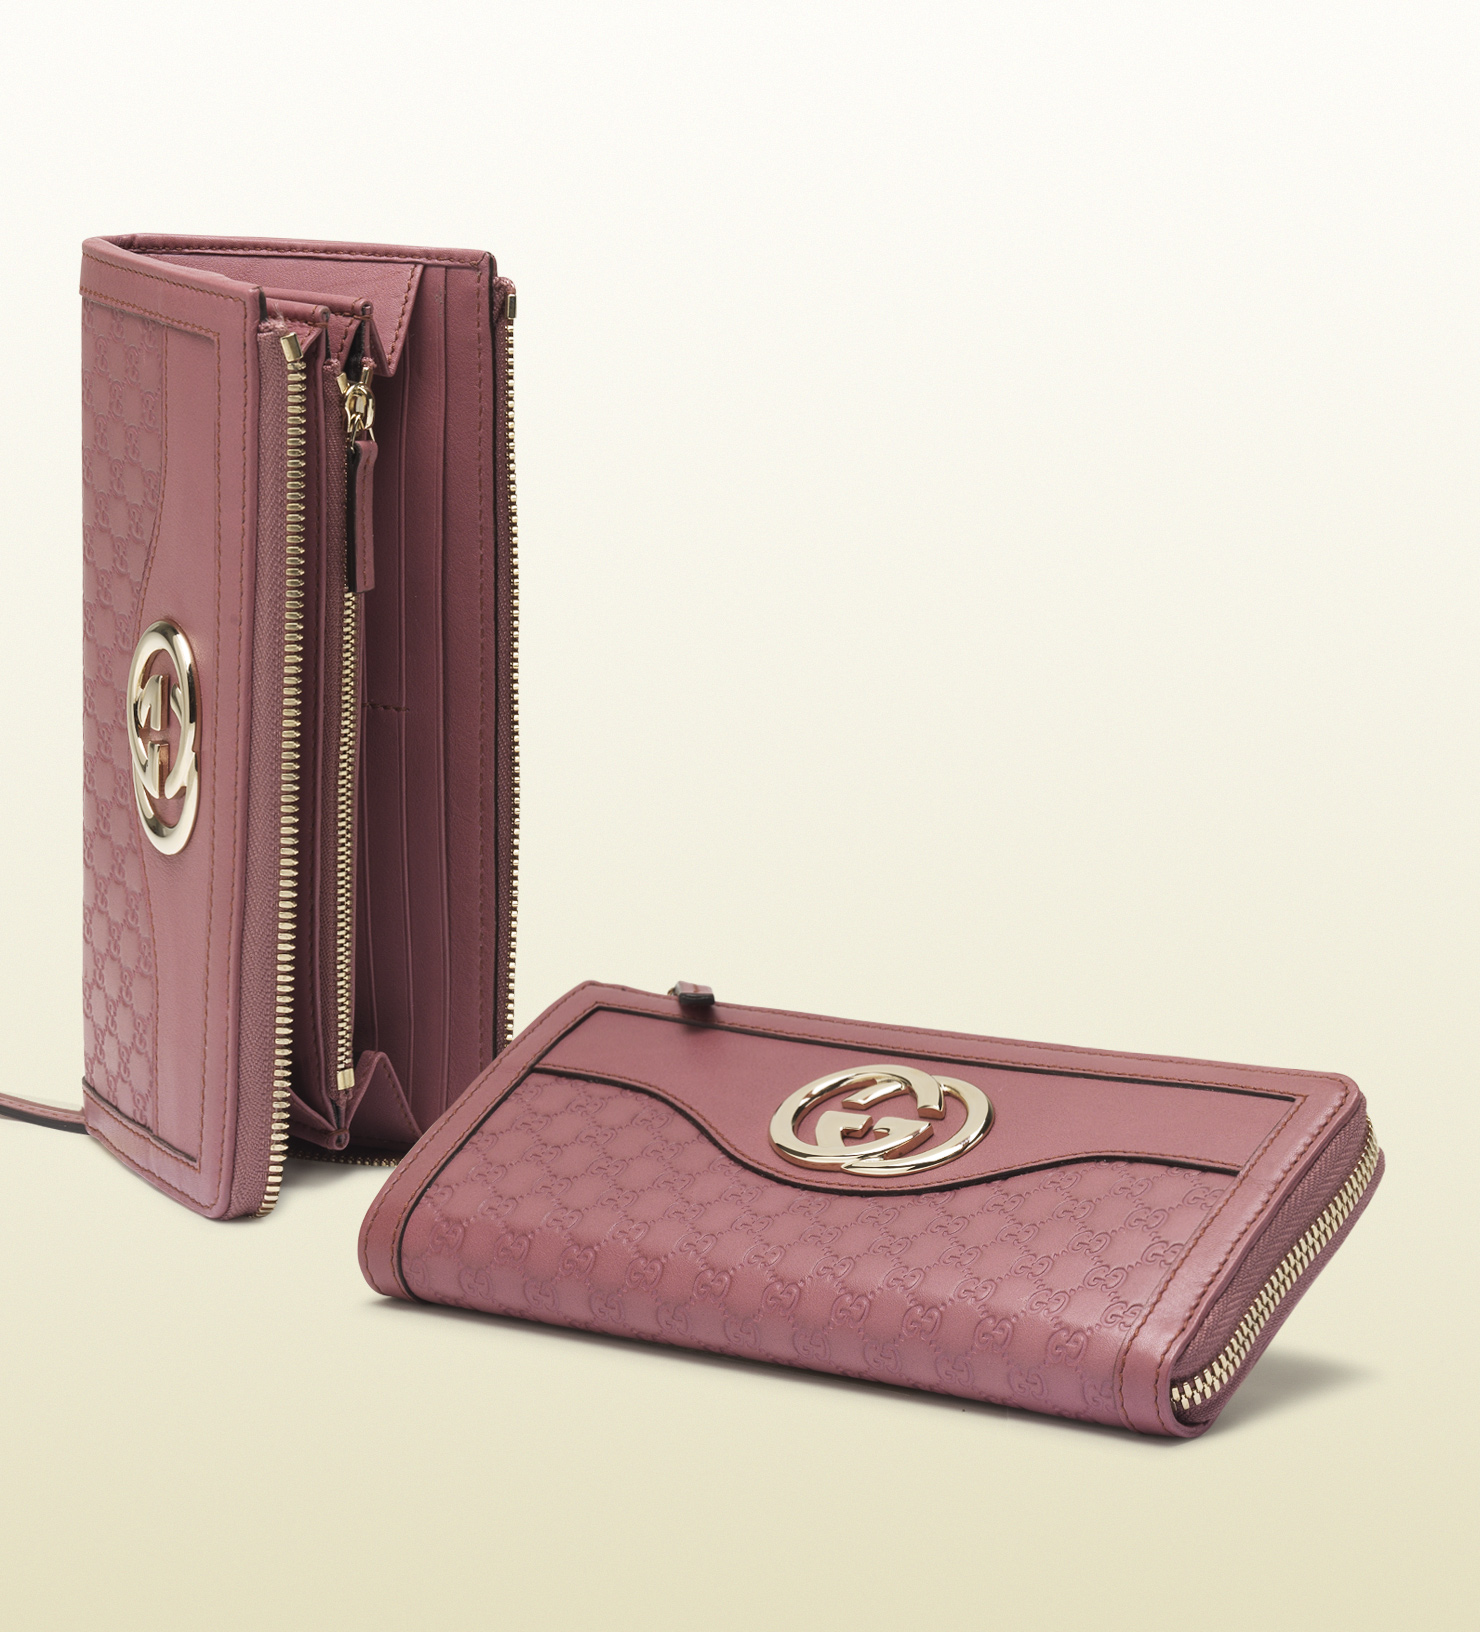 a295f84a6ca Lyst - Gucci Sukey Microguccissima Leather Zip Around Wallet in Pink